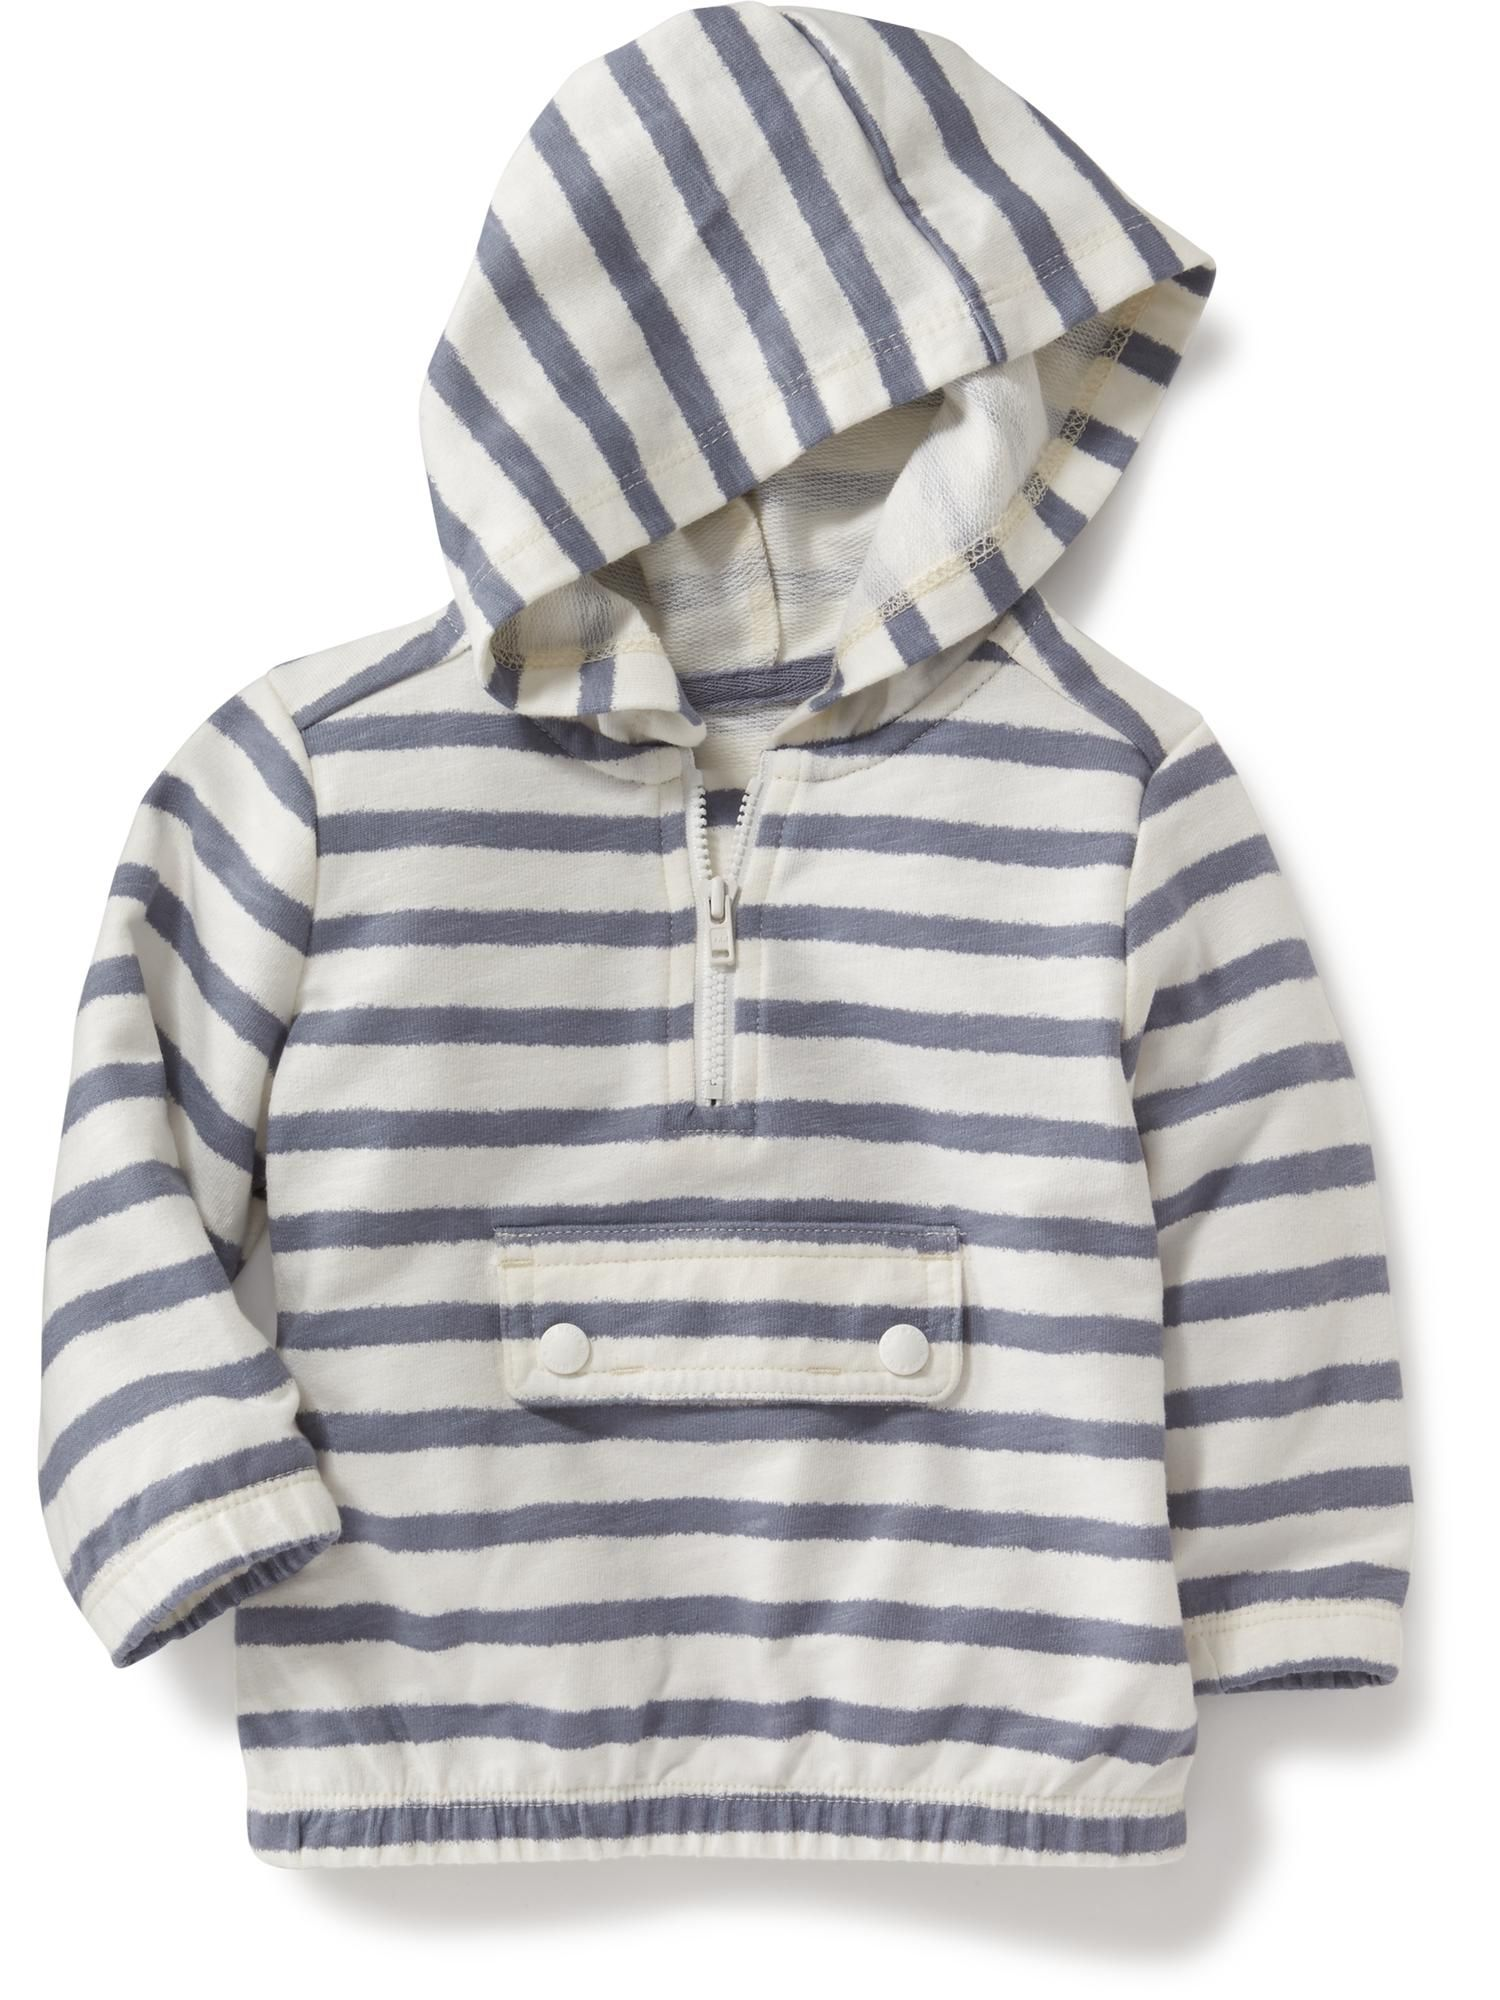 Quarter Zip French Terry Hoodie For Baby Old Navy Toddler Boy Outfits Baby Boy Jackets Boy Outerwear [ 2000 x 1500 Pixel ]